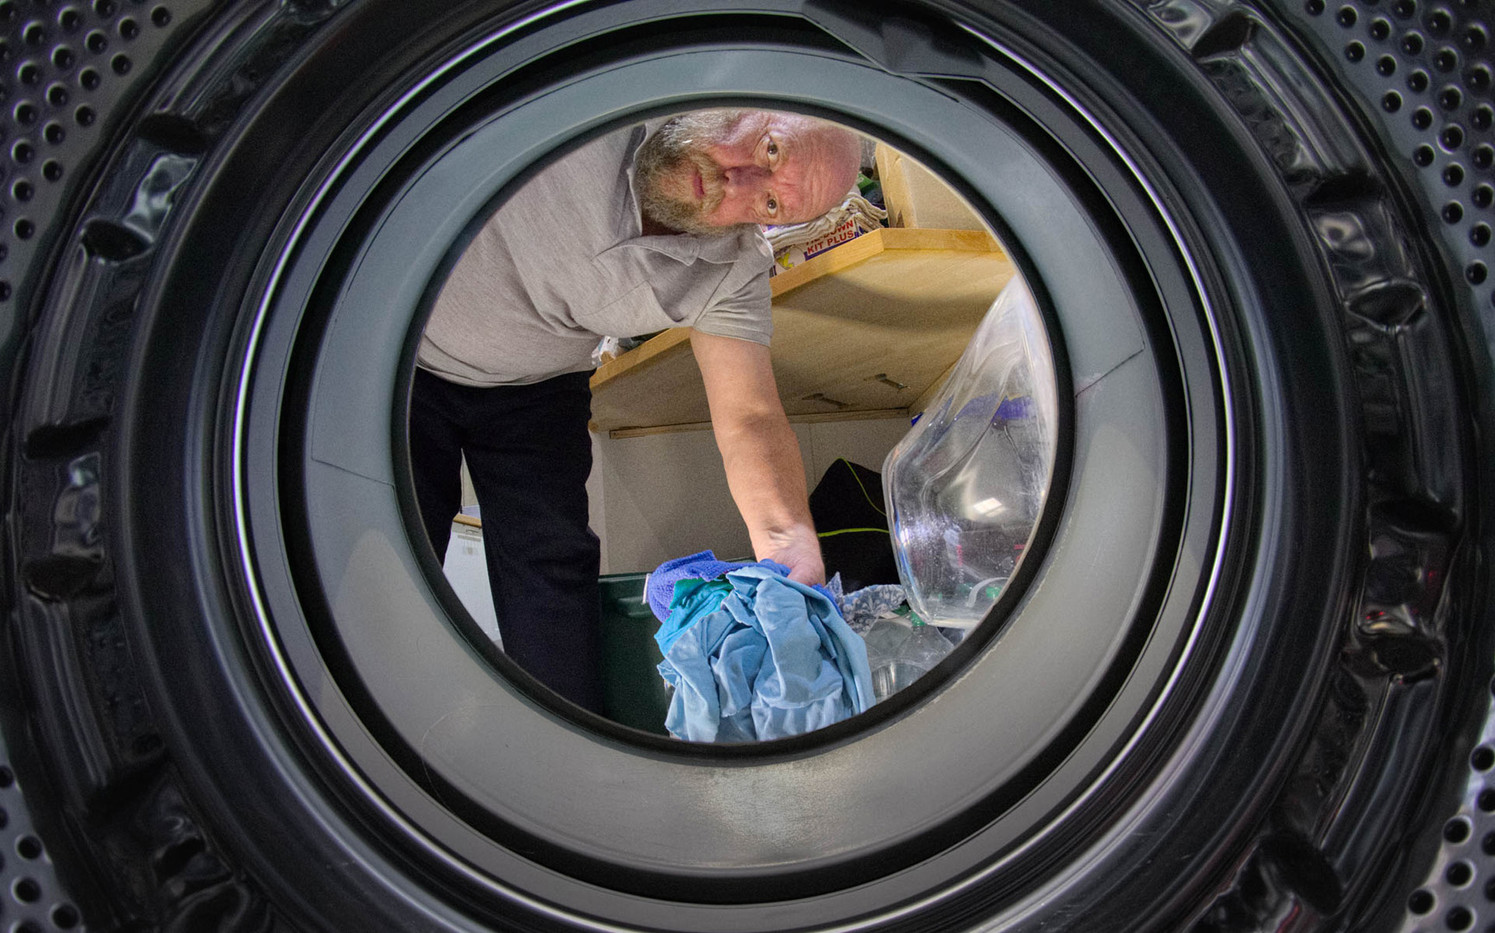 19 THE VIEW FROM INSIDE A WASHING MACHINE by Tony Hill